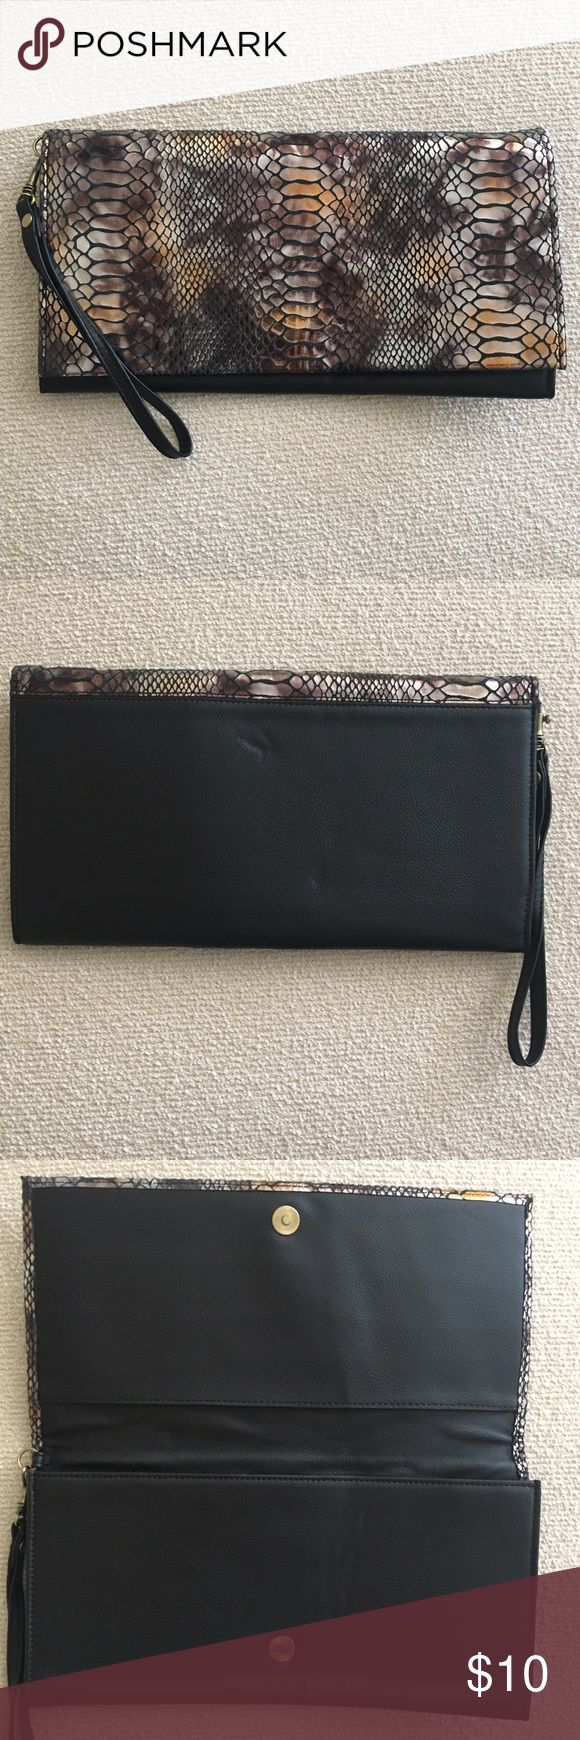 Deena & Ozzy Clutch (Urban Outfitters) Gently used black and snake skin pattern clutch with wrist strap. Deena & Ozzy Bags Clutches & Wristlets